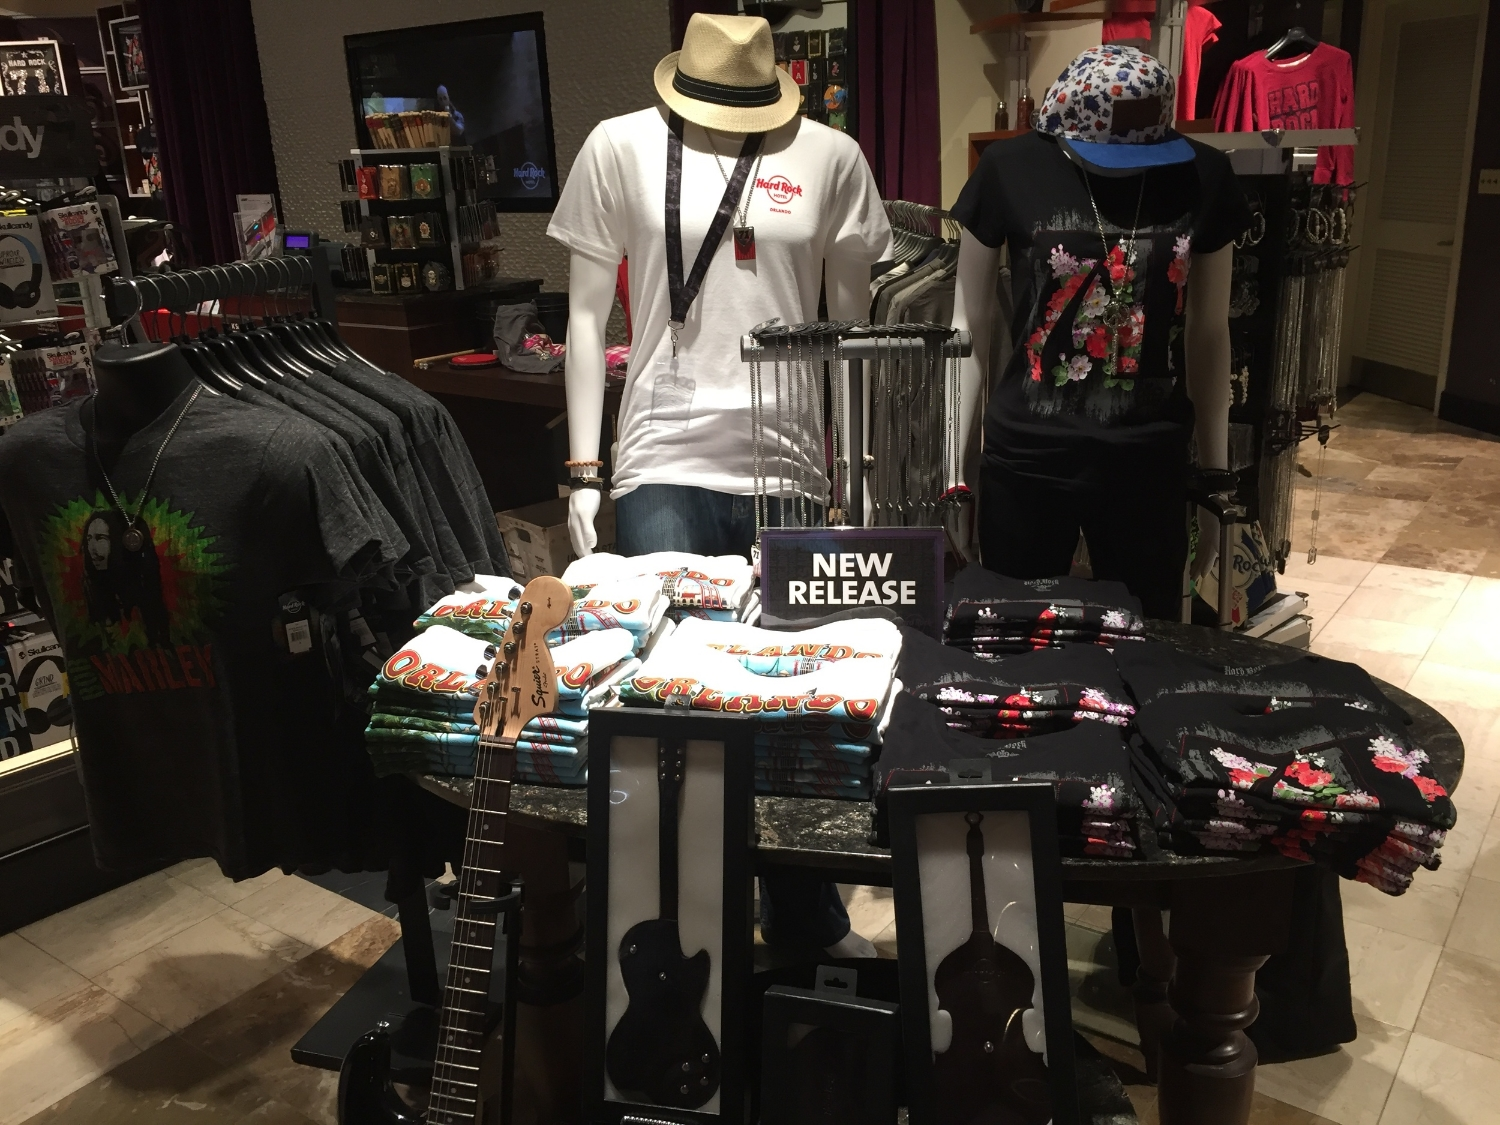 Apparel Display at Rock Shop in Hard Rock Hotel Orlando